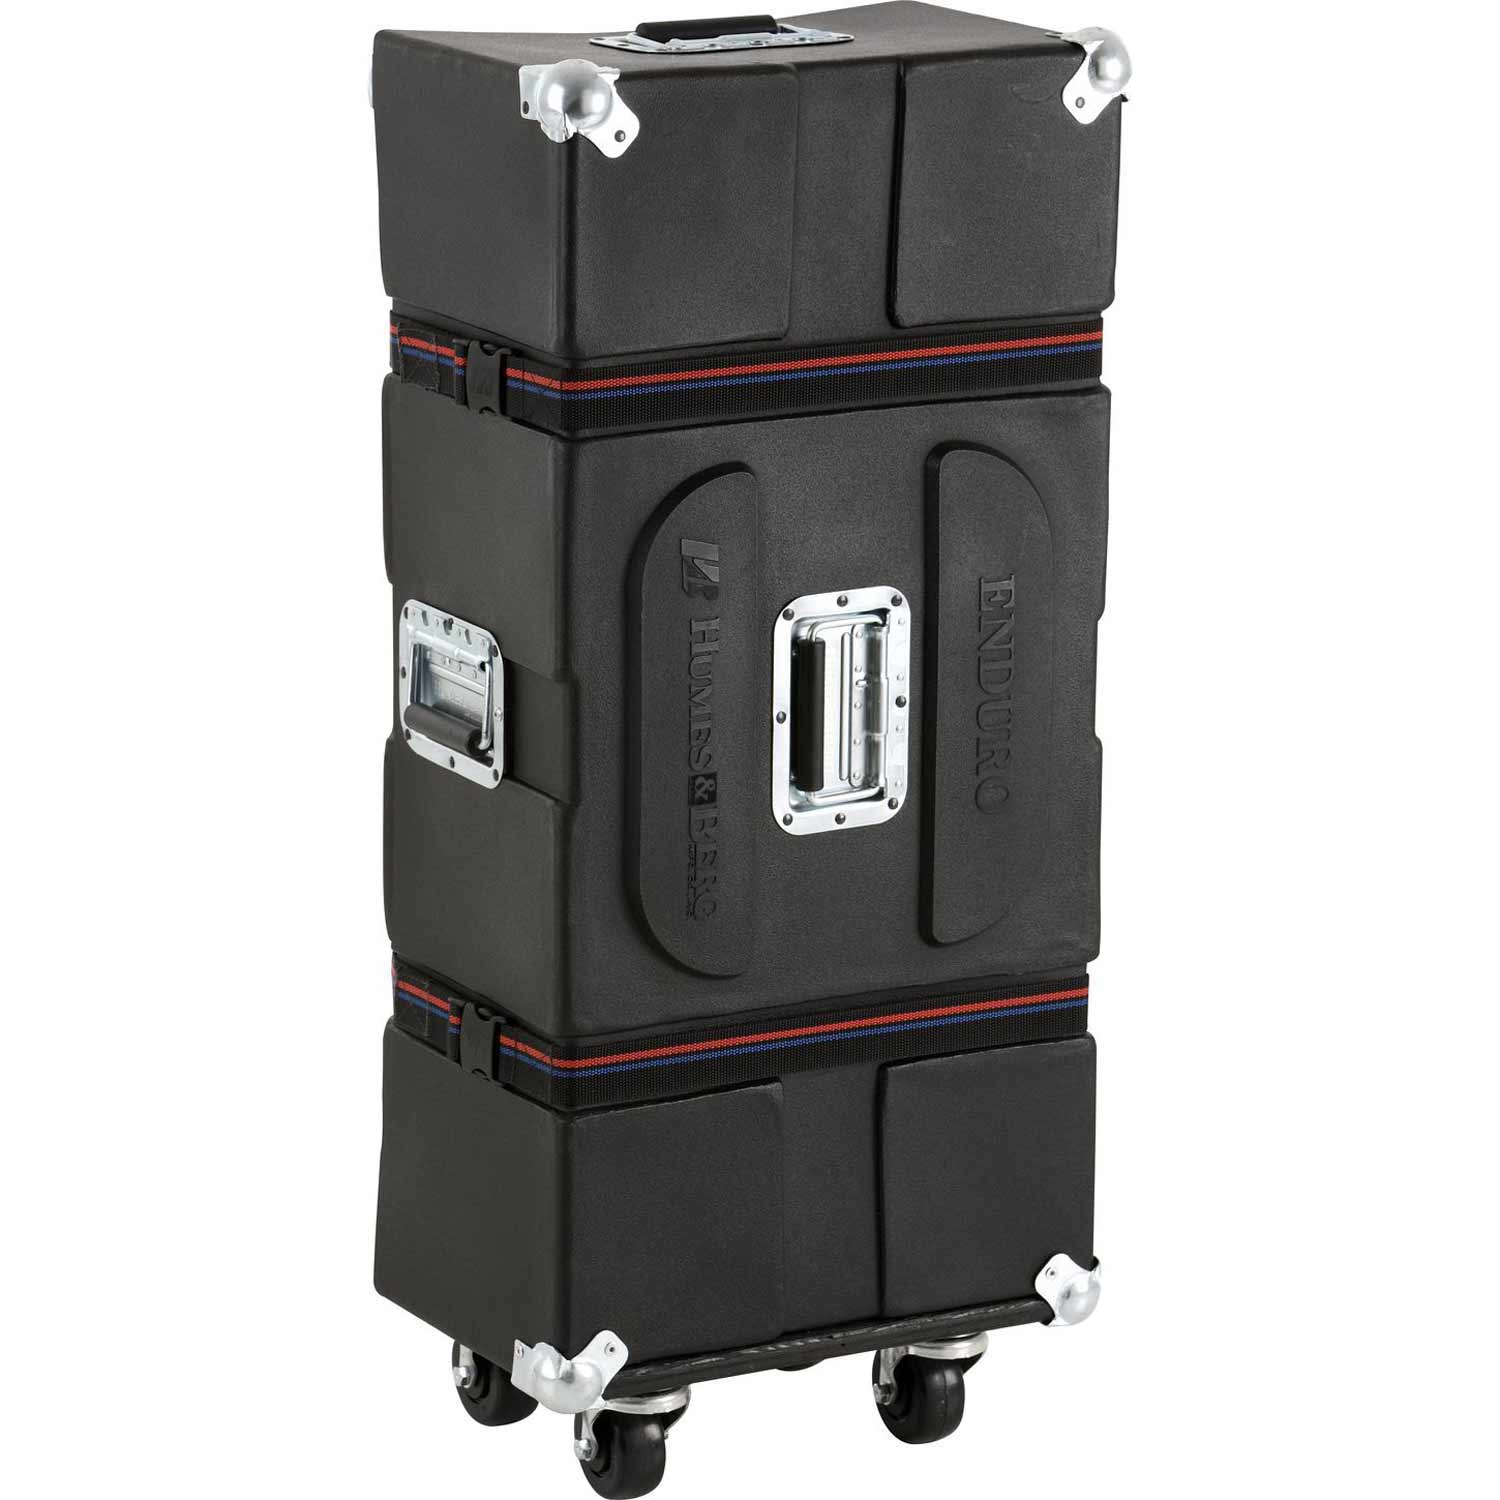 "Humes & Berg 36"" x 14.5"" x 9"" Enduro Small Stand Hardware Case with Wheels"